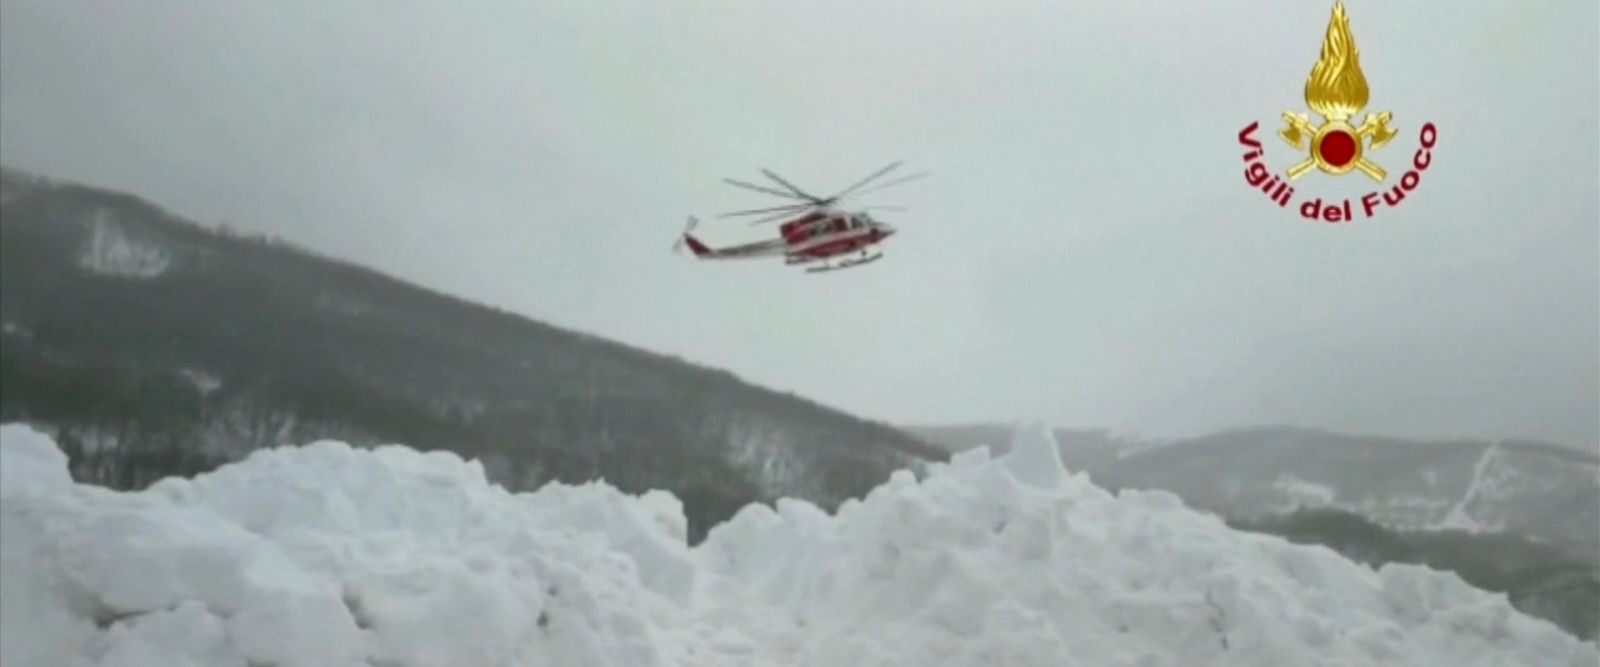 VIDEO: The avalanche at Hotel Rigopiano on the Gran Sasso mountain, about 30 miles from the coastal city of Pescara, occurred after a series of earthquakes that shook central Italy on Wednesday.